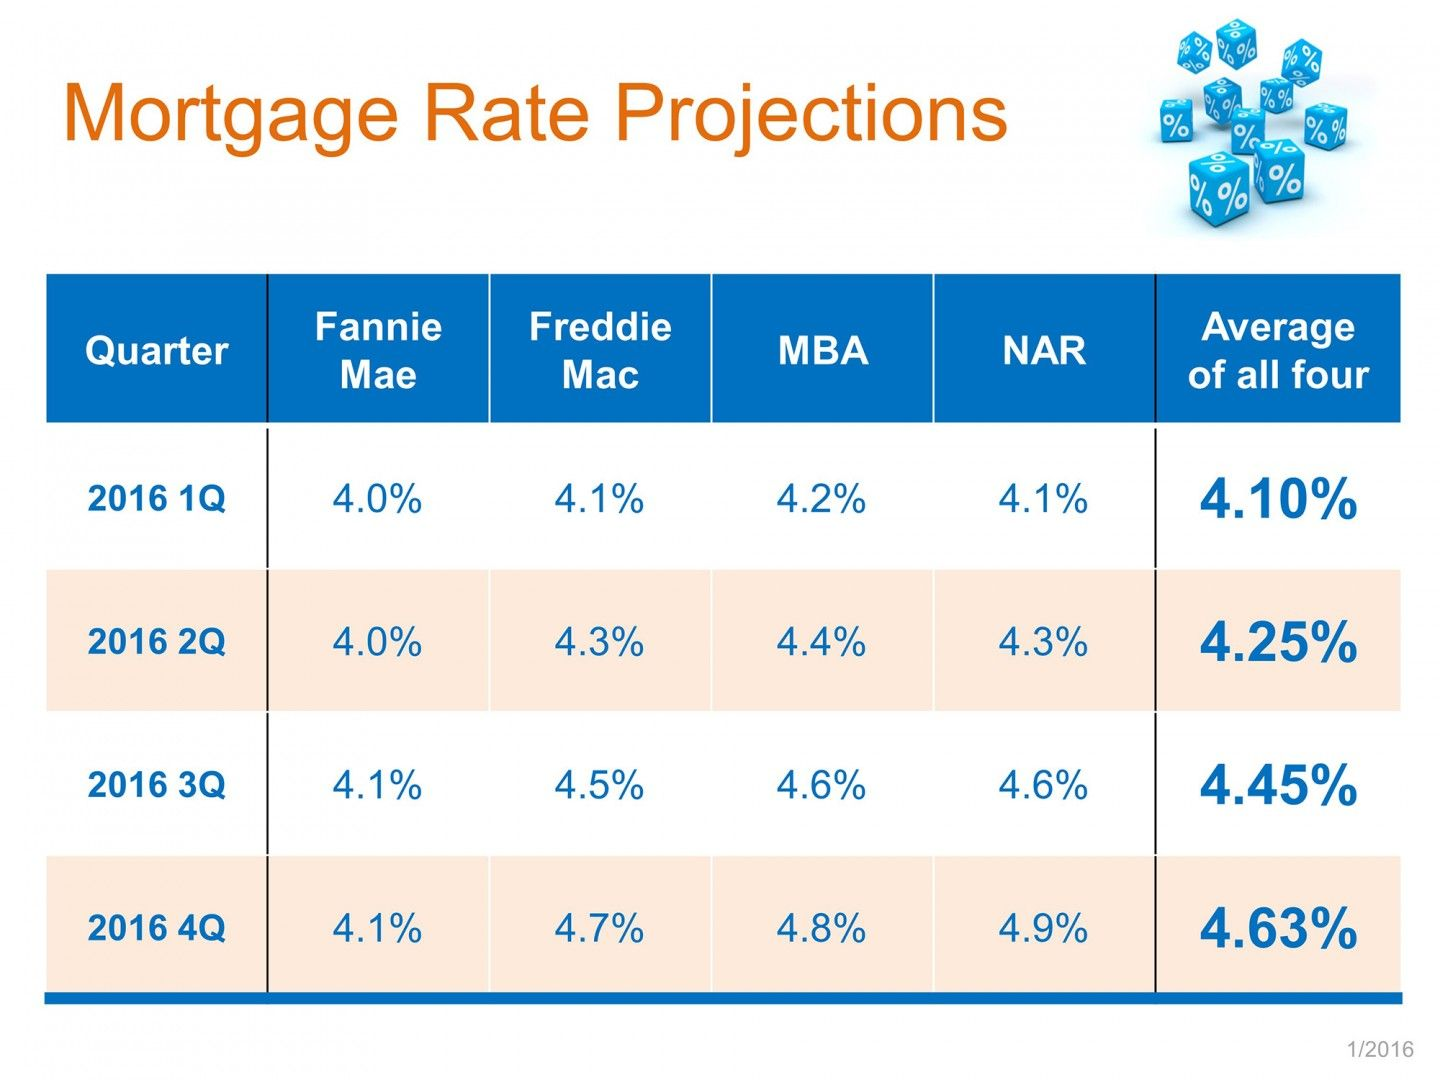 According To Bankrate Com The Current Mortgage Rates For A Single Family Home On A 30 Year Fixed Rat Mortgage Rates Home Interest Rates This Or That Questions